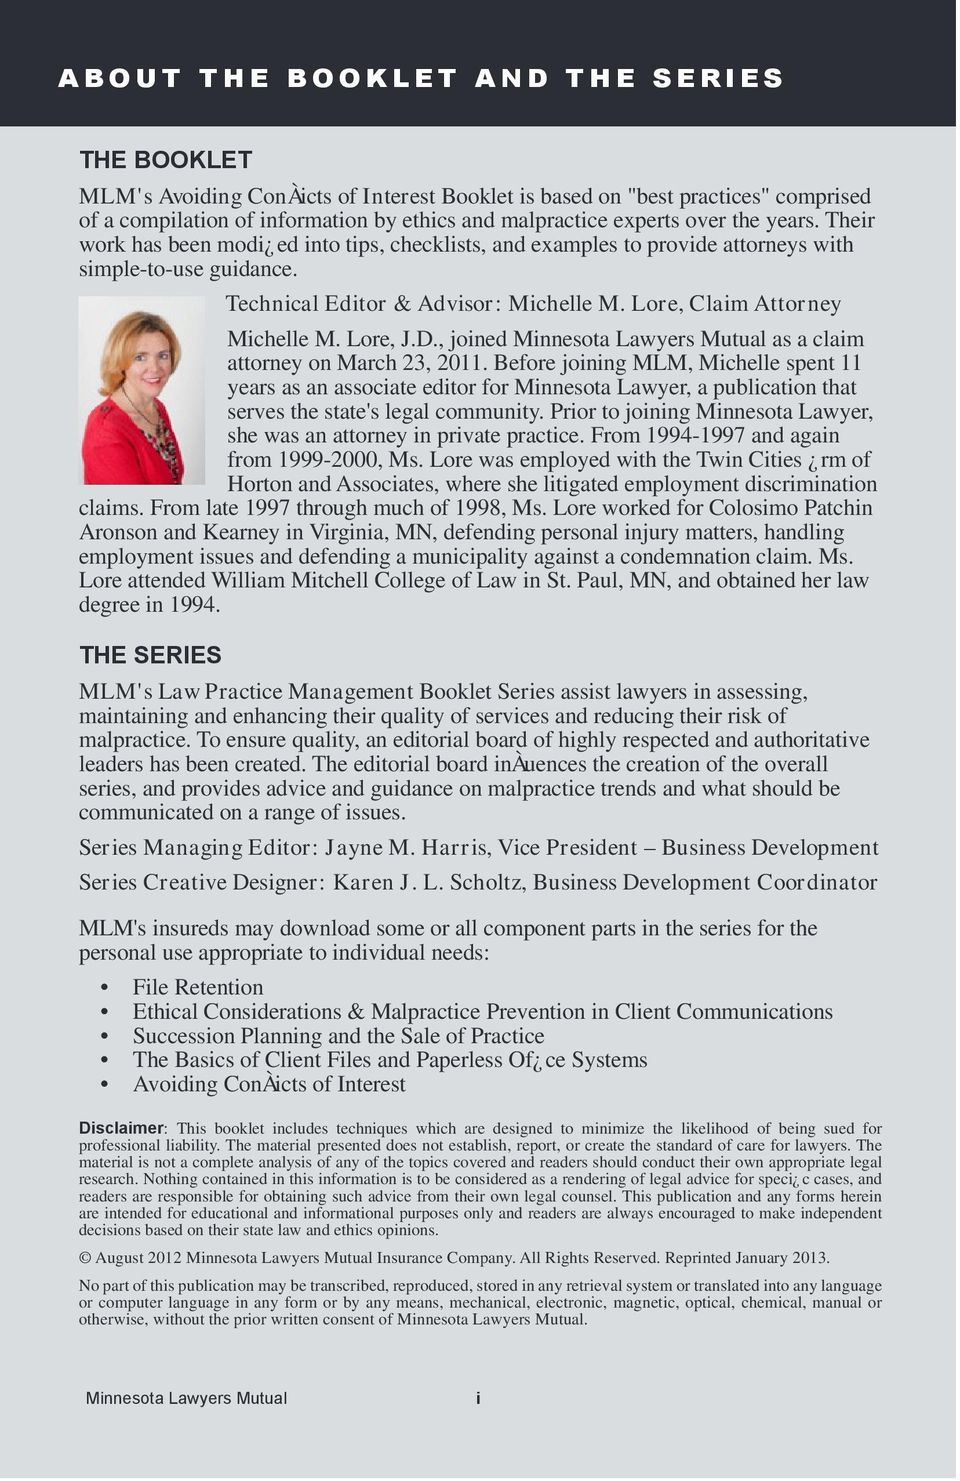 Lore, Claim Attor ney Michelle M. Lore, J.D., joined Minnesota Lawyers Mutual as a claim attorney on March 23, 2011.